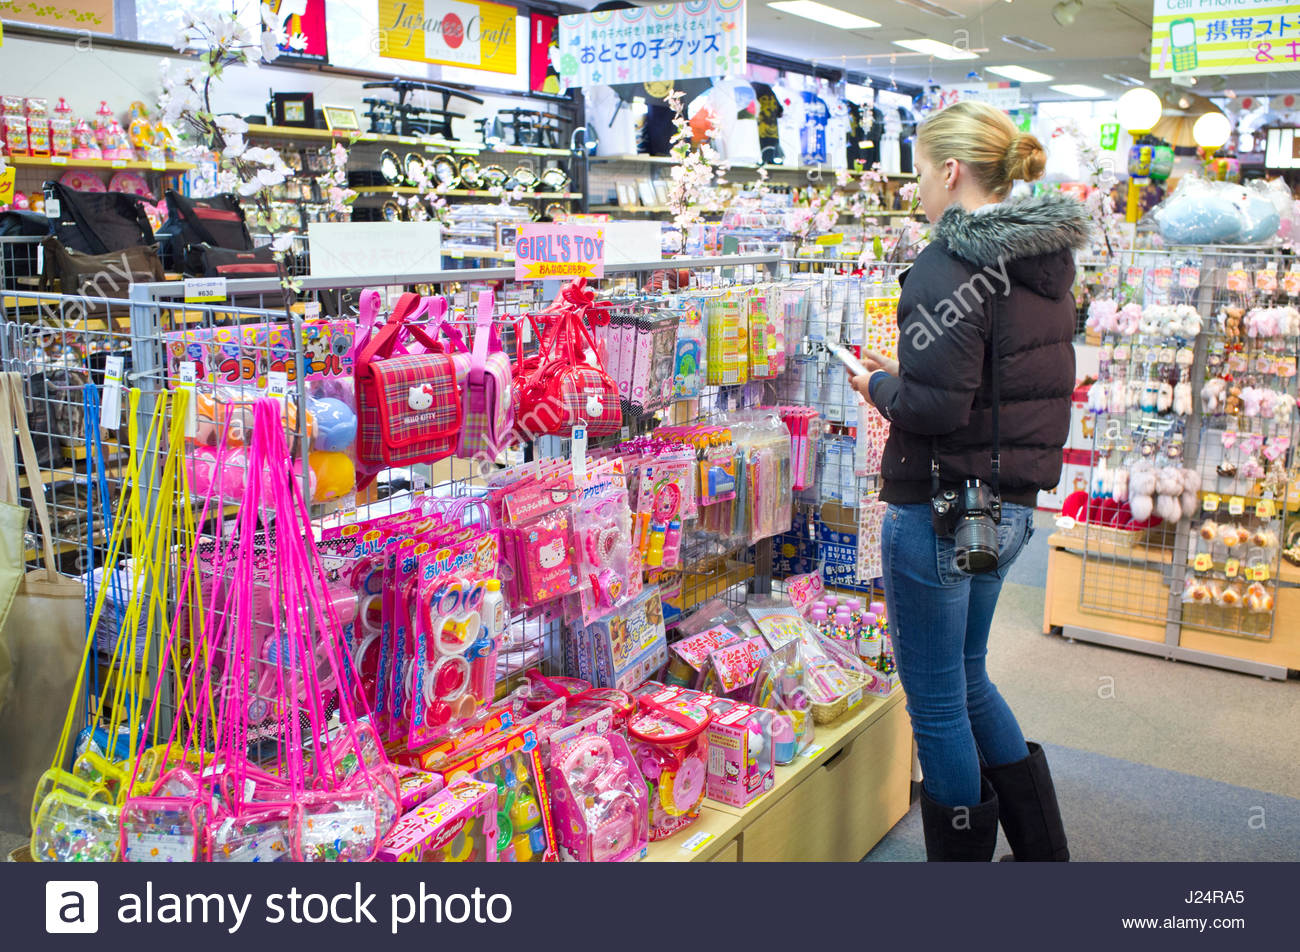 caucasian teenage girl shopping for cute gifts for her friends motohakone hakone machi kanagawa kanto honshu japan